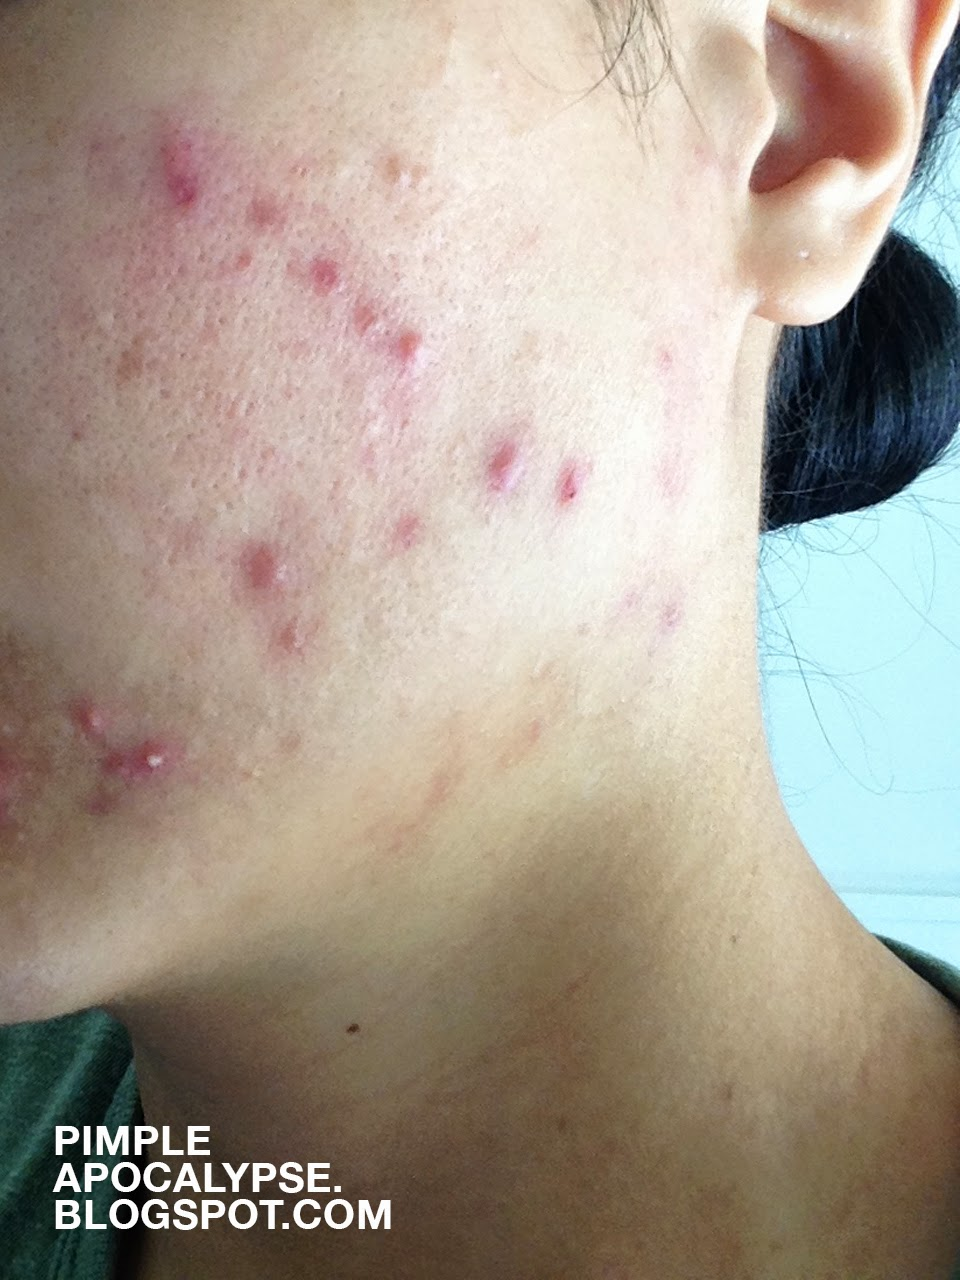 cystic acne, clogged pores, acne breakouts